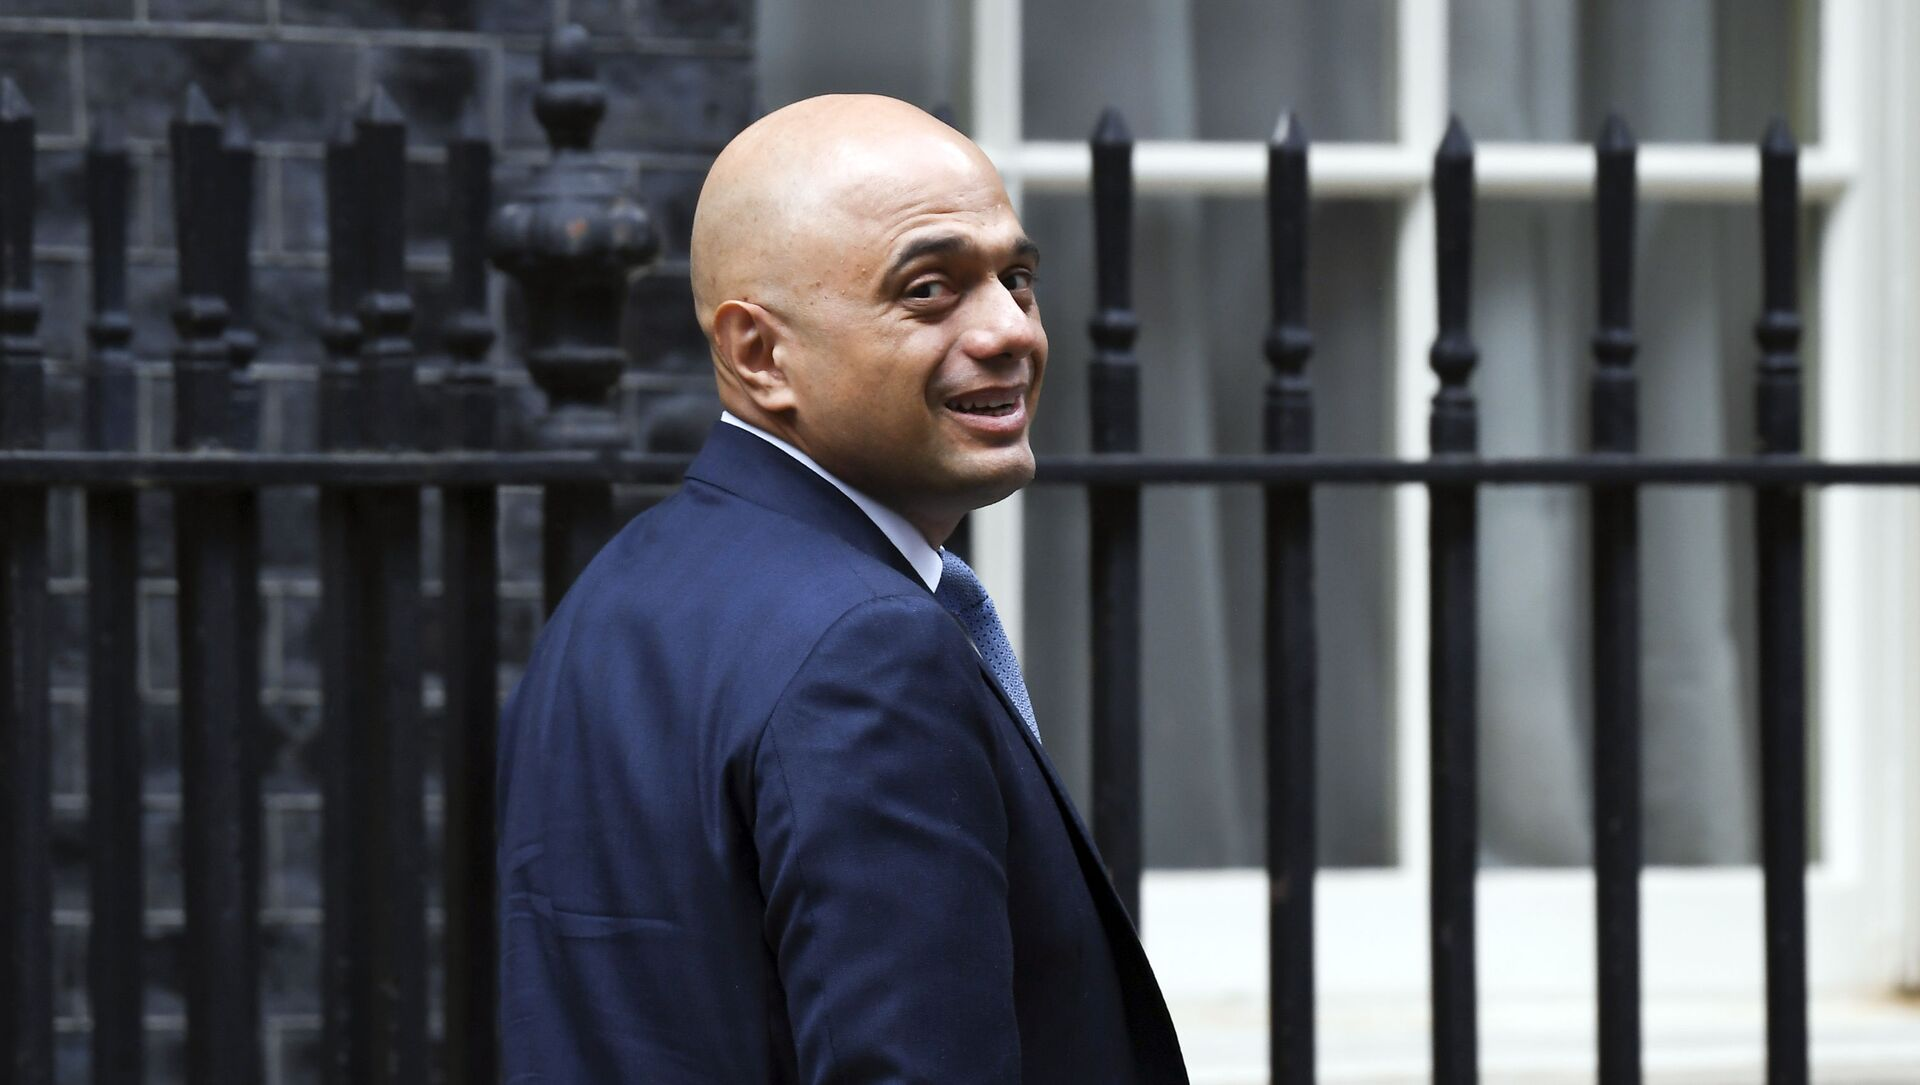 British Chancellor of the Exchequer Sajid Javid leaves 11 Downing Street in London, Wednesday, 4 September 2019 - Sputnik International, 1920, 09.07.2021